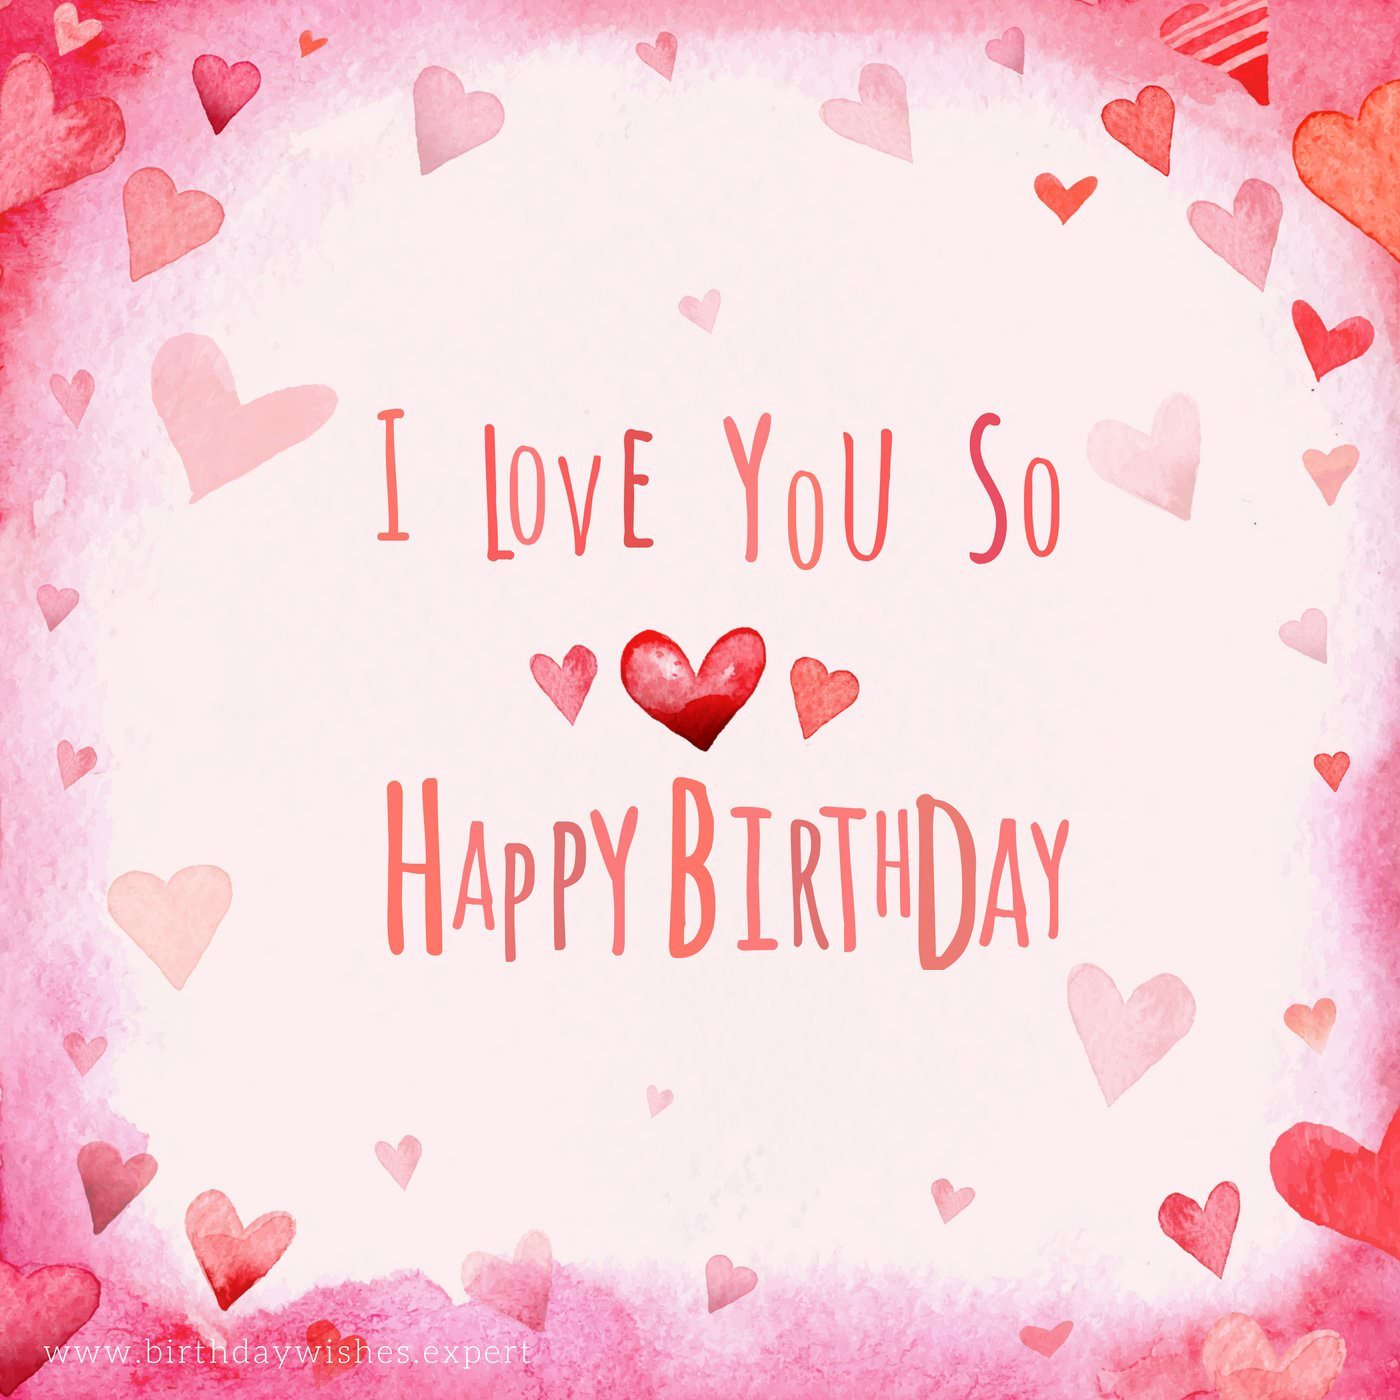 Gambar Happy Birthday Love Images Free Download Top 70